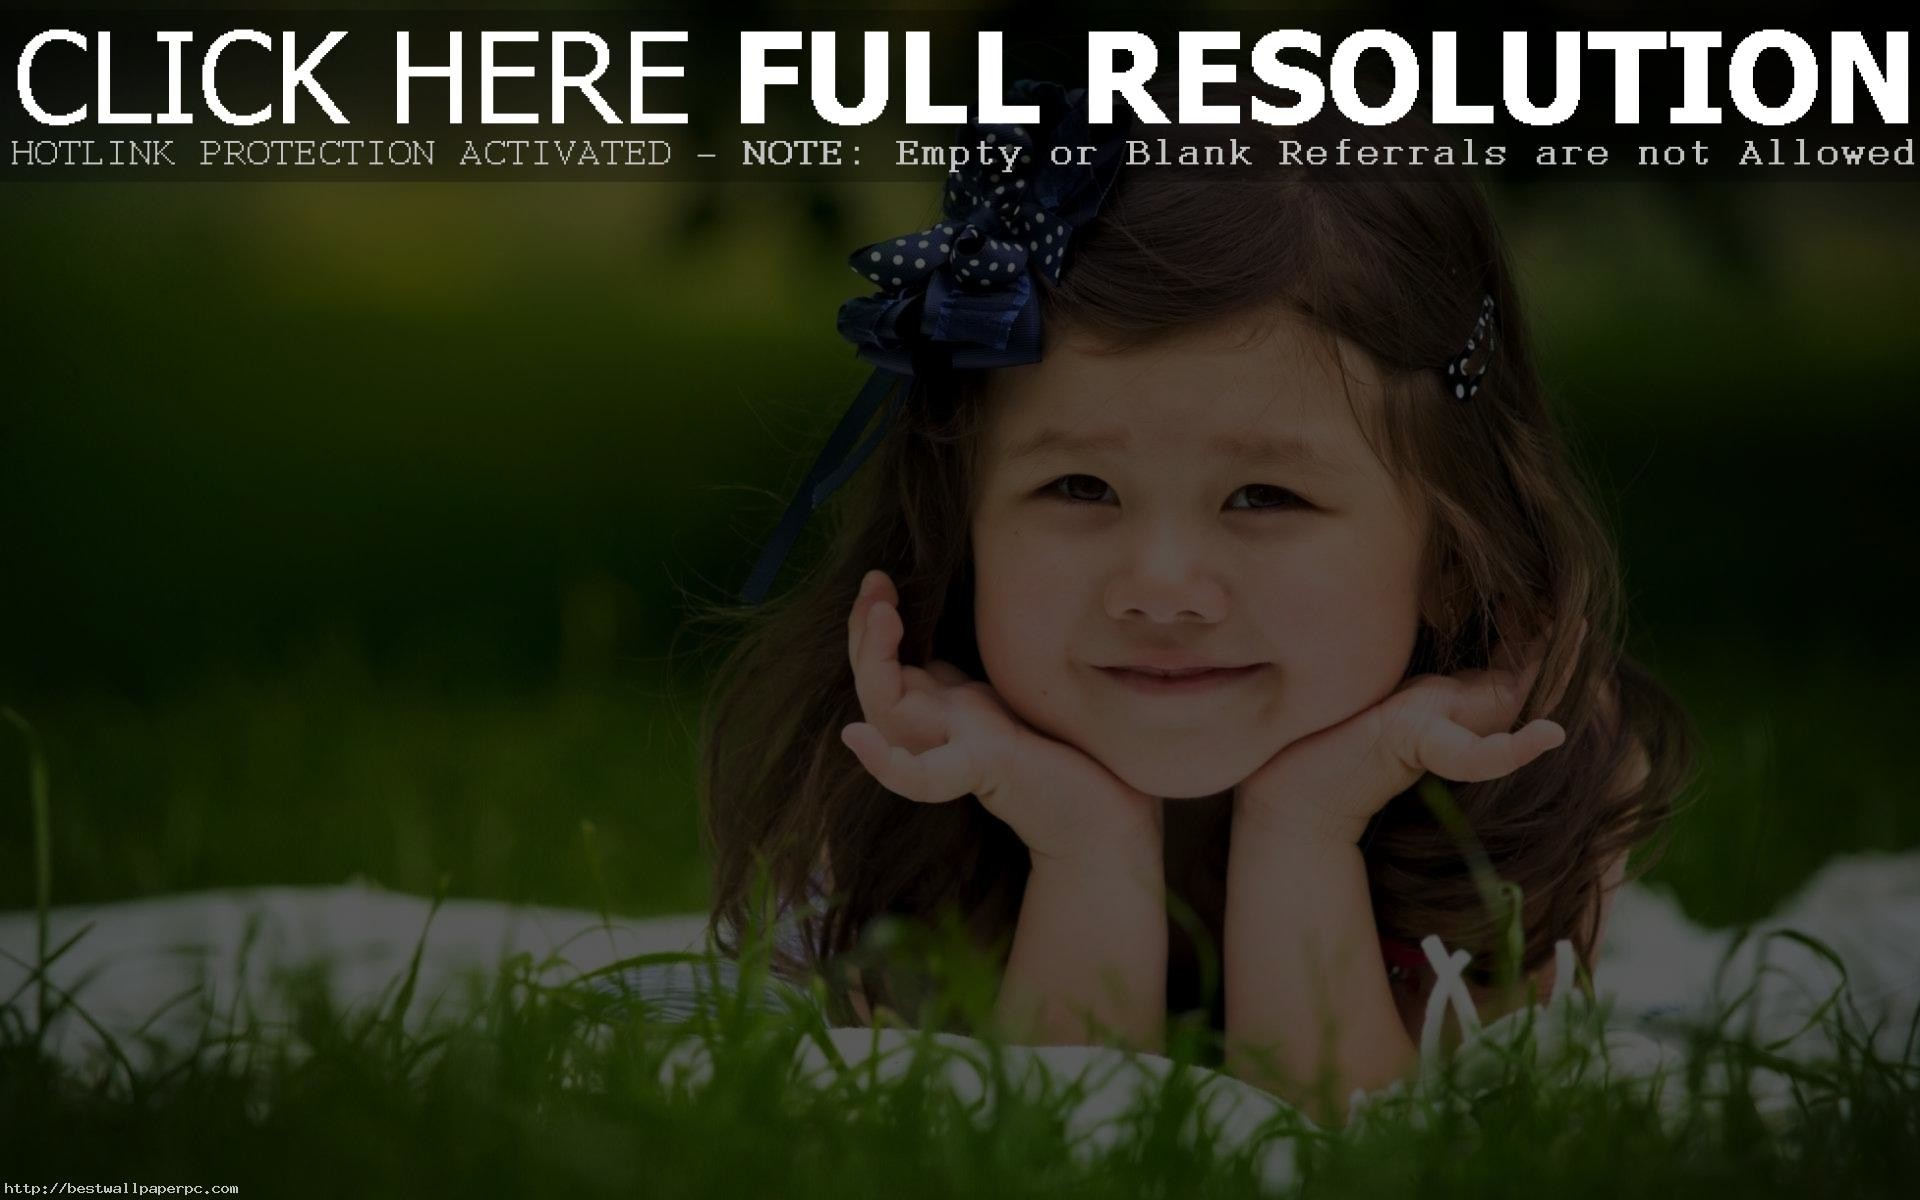 1920x1200 Cute Baby Girls With A Smile Images Full HD